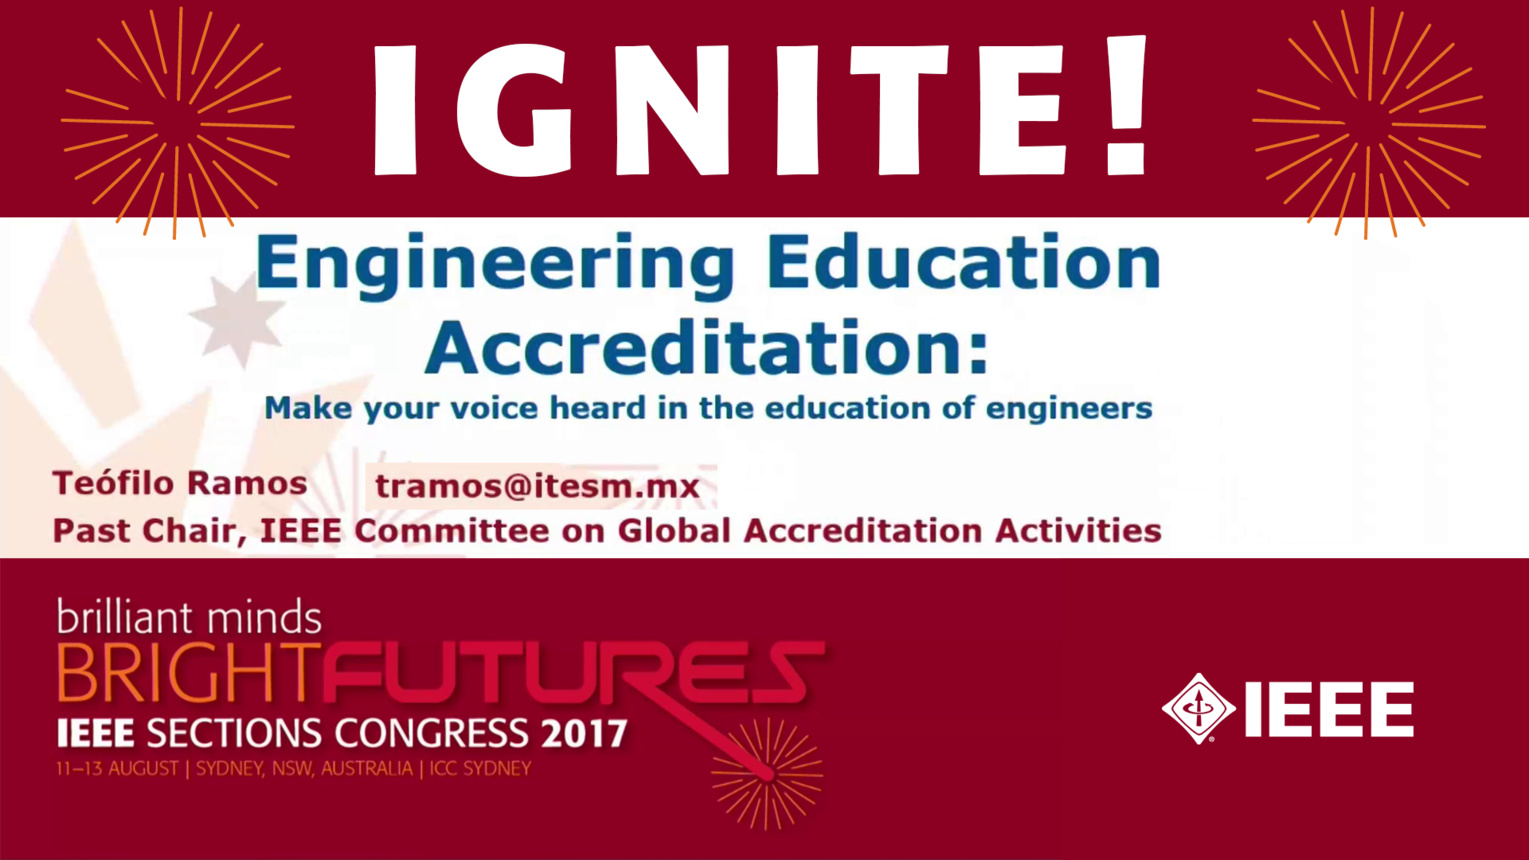 Engineering Education Accreditation - Teofilo Ramos - Ignite: Sections Congress 2017